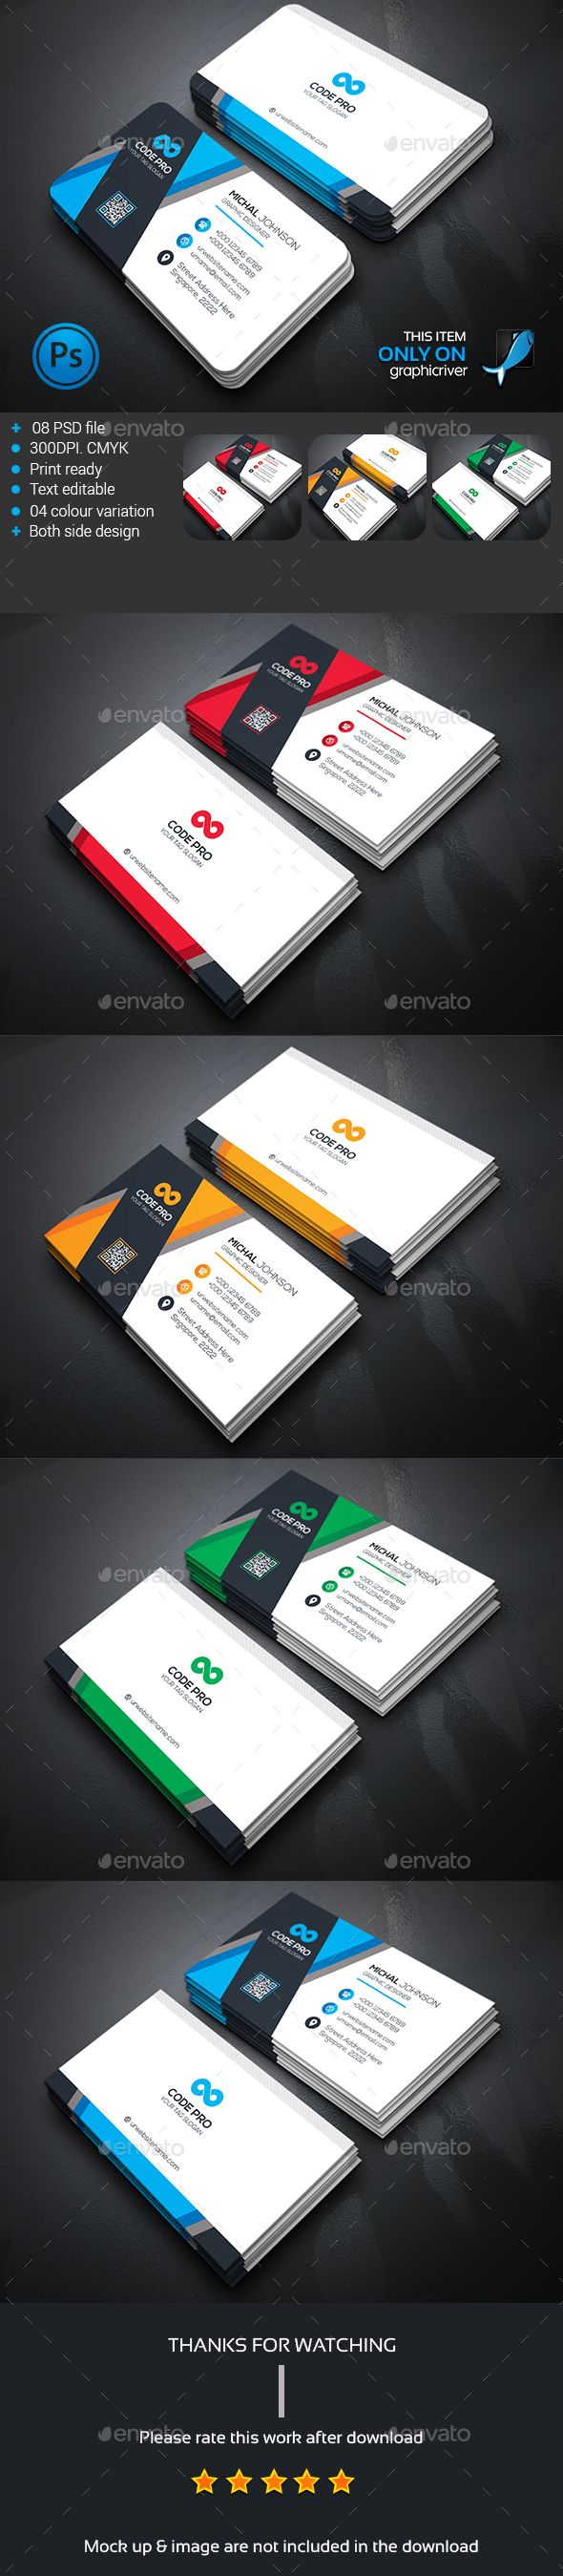 System Corporate Business Card — Photoshop PSD #package #graphic • Available here → https://graphicriver.net/item/system-corporate-business-card/13831447?ref=pxcr